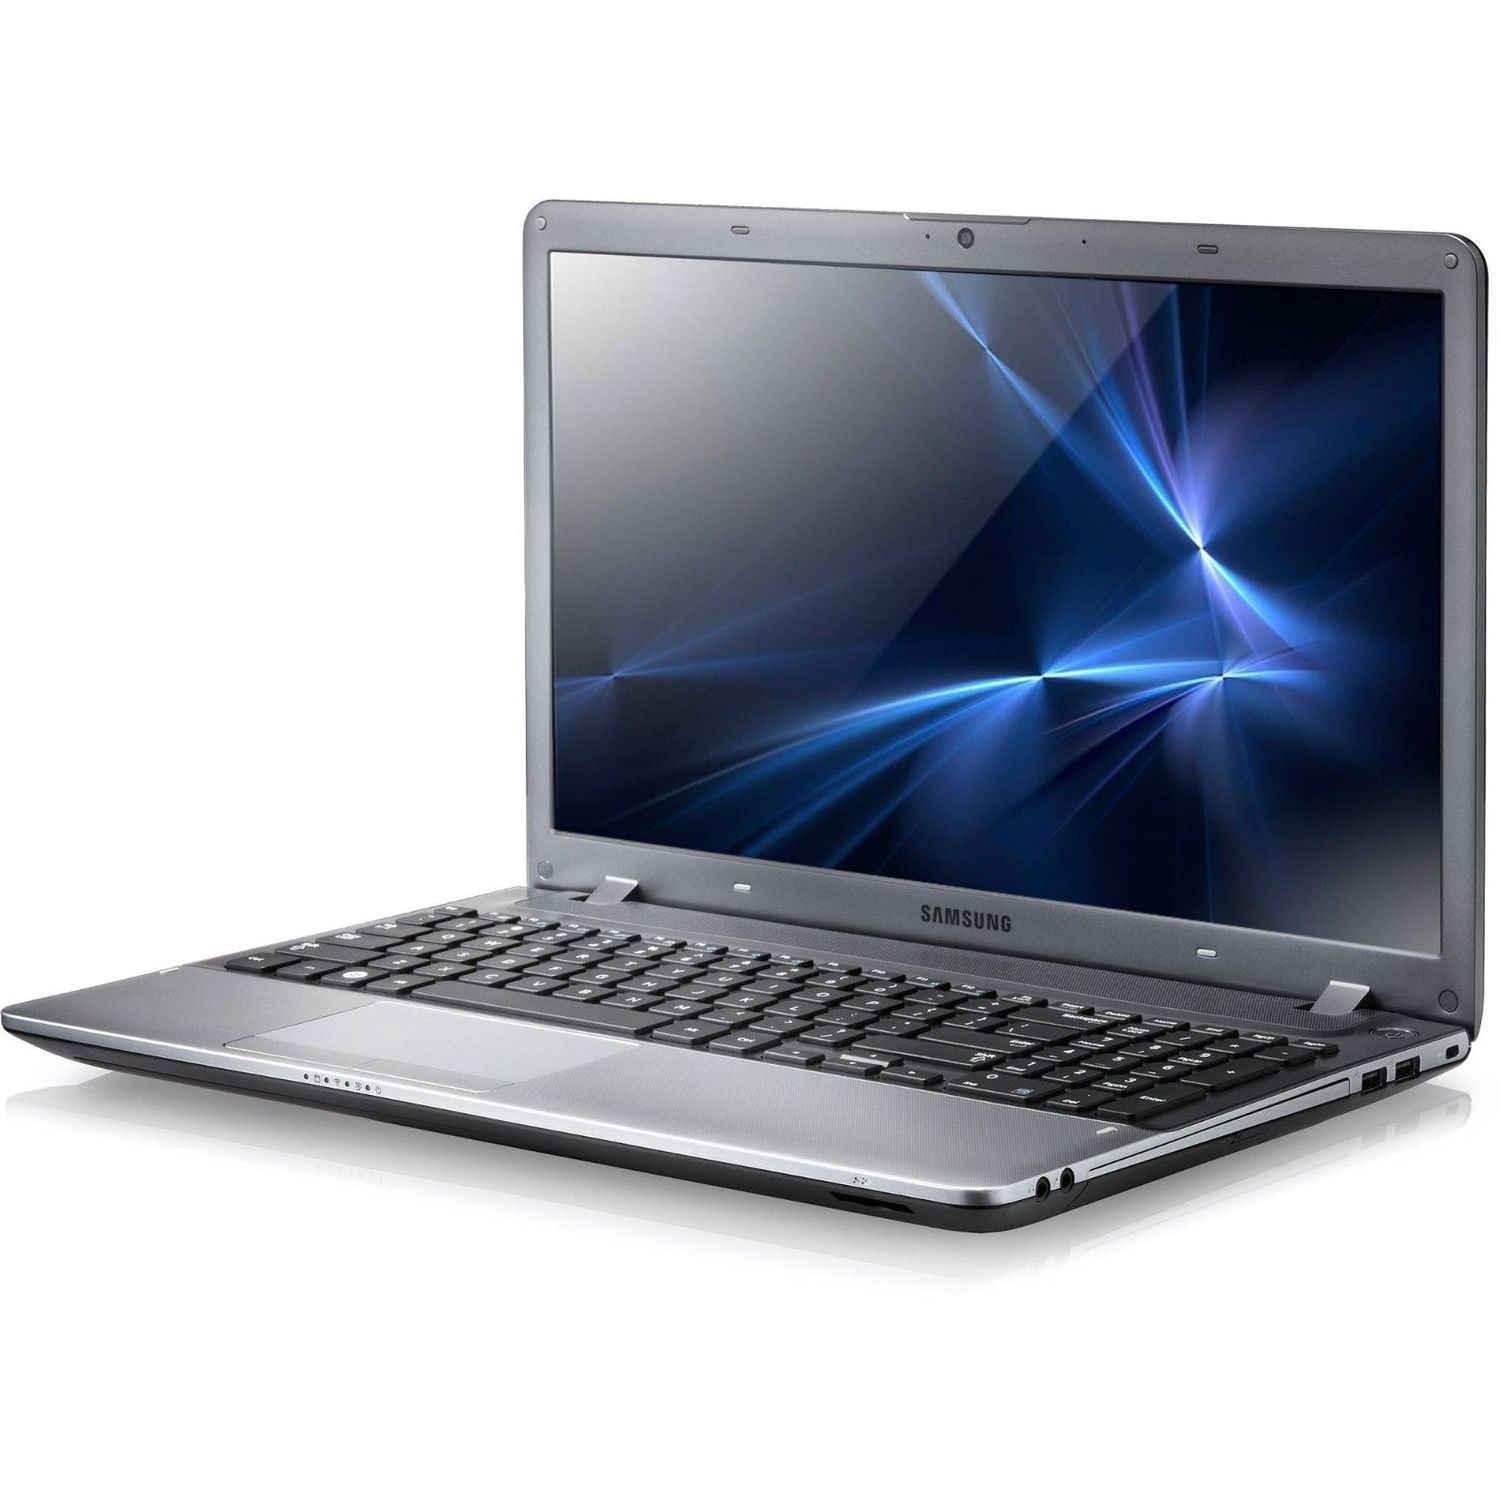 Refurbished Samsung Np350v5c A02 Intel Core I5 6gb 500gb 15 6 Inch Windows 10 Laptop Laptops Direct